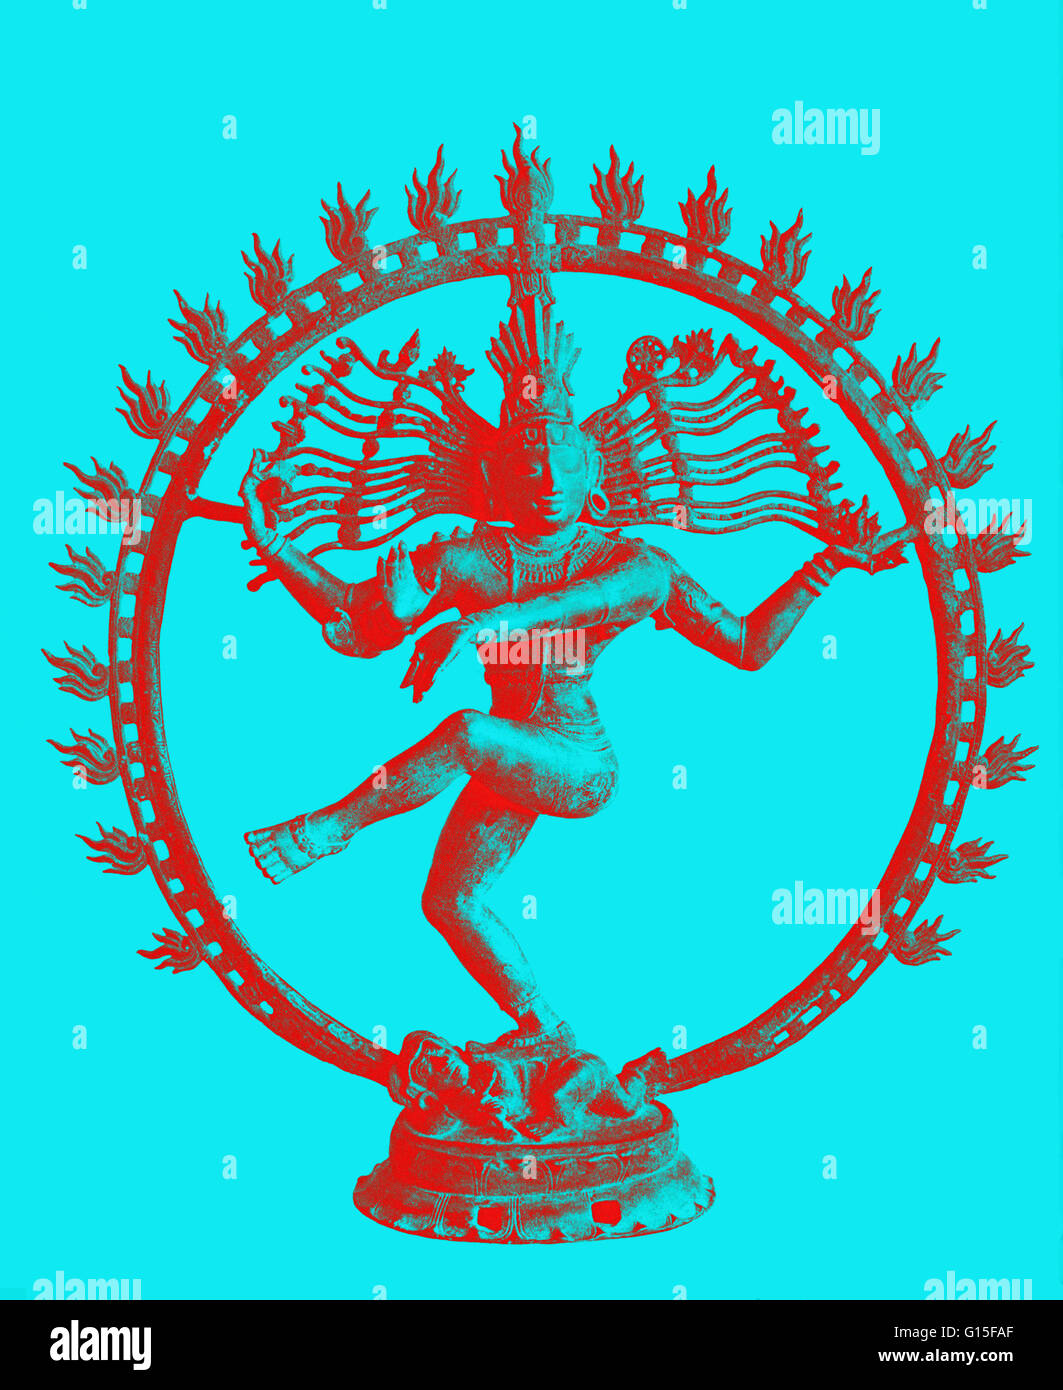 Shiva dancing in circle of flames. 11th cen. Bronze. Shiva is the third member of the Hindu Trimurti. He acts as - Stock Image